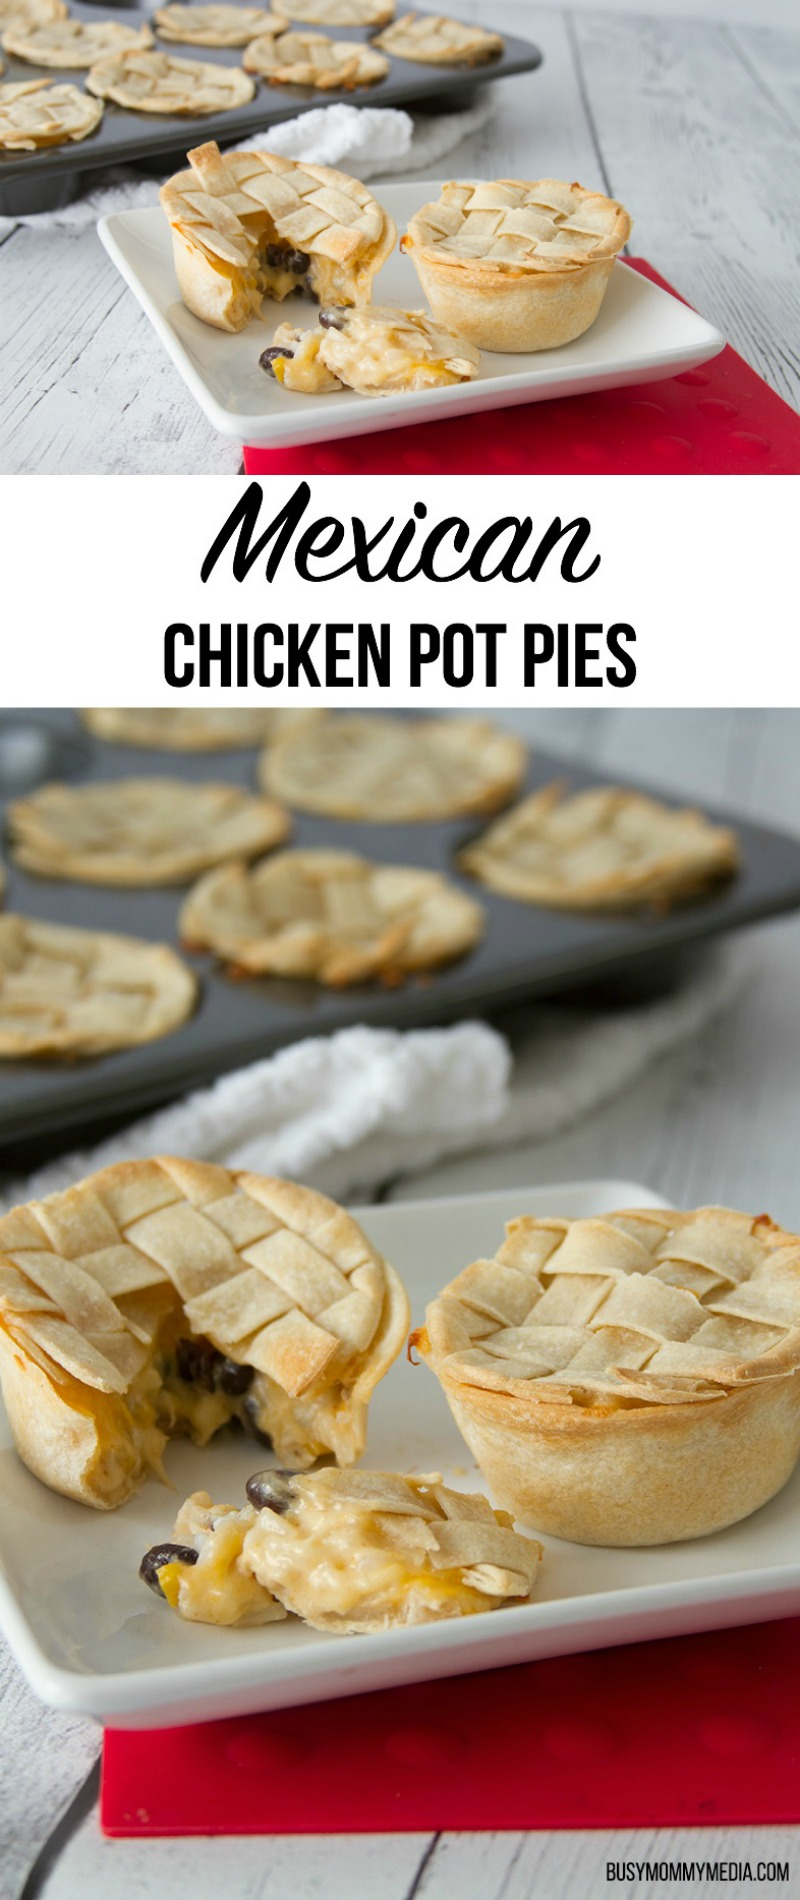 Mexican Chicken Pot Pie Recipe | These fun mini-hand pies are perfect for entertaining and kids love them!